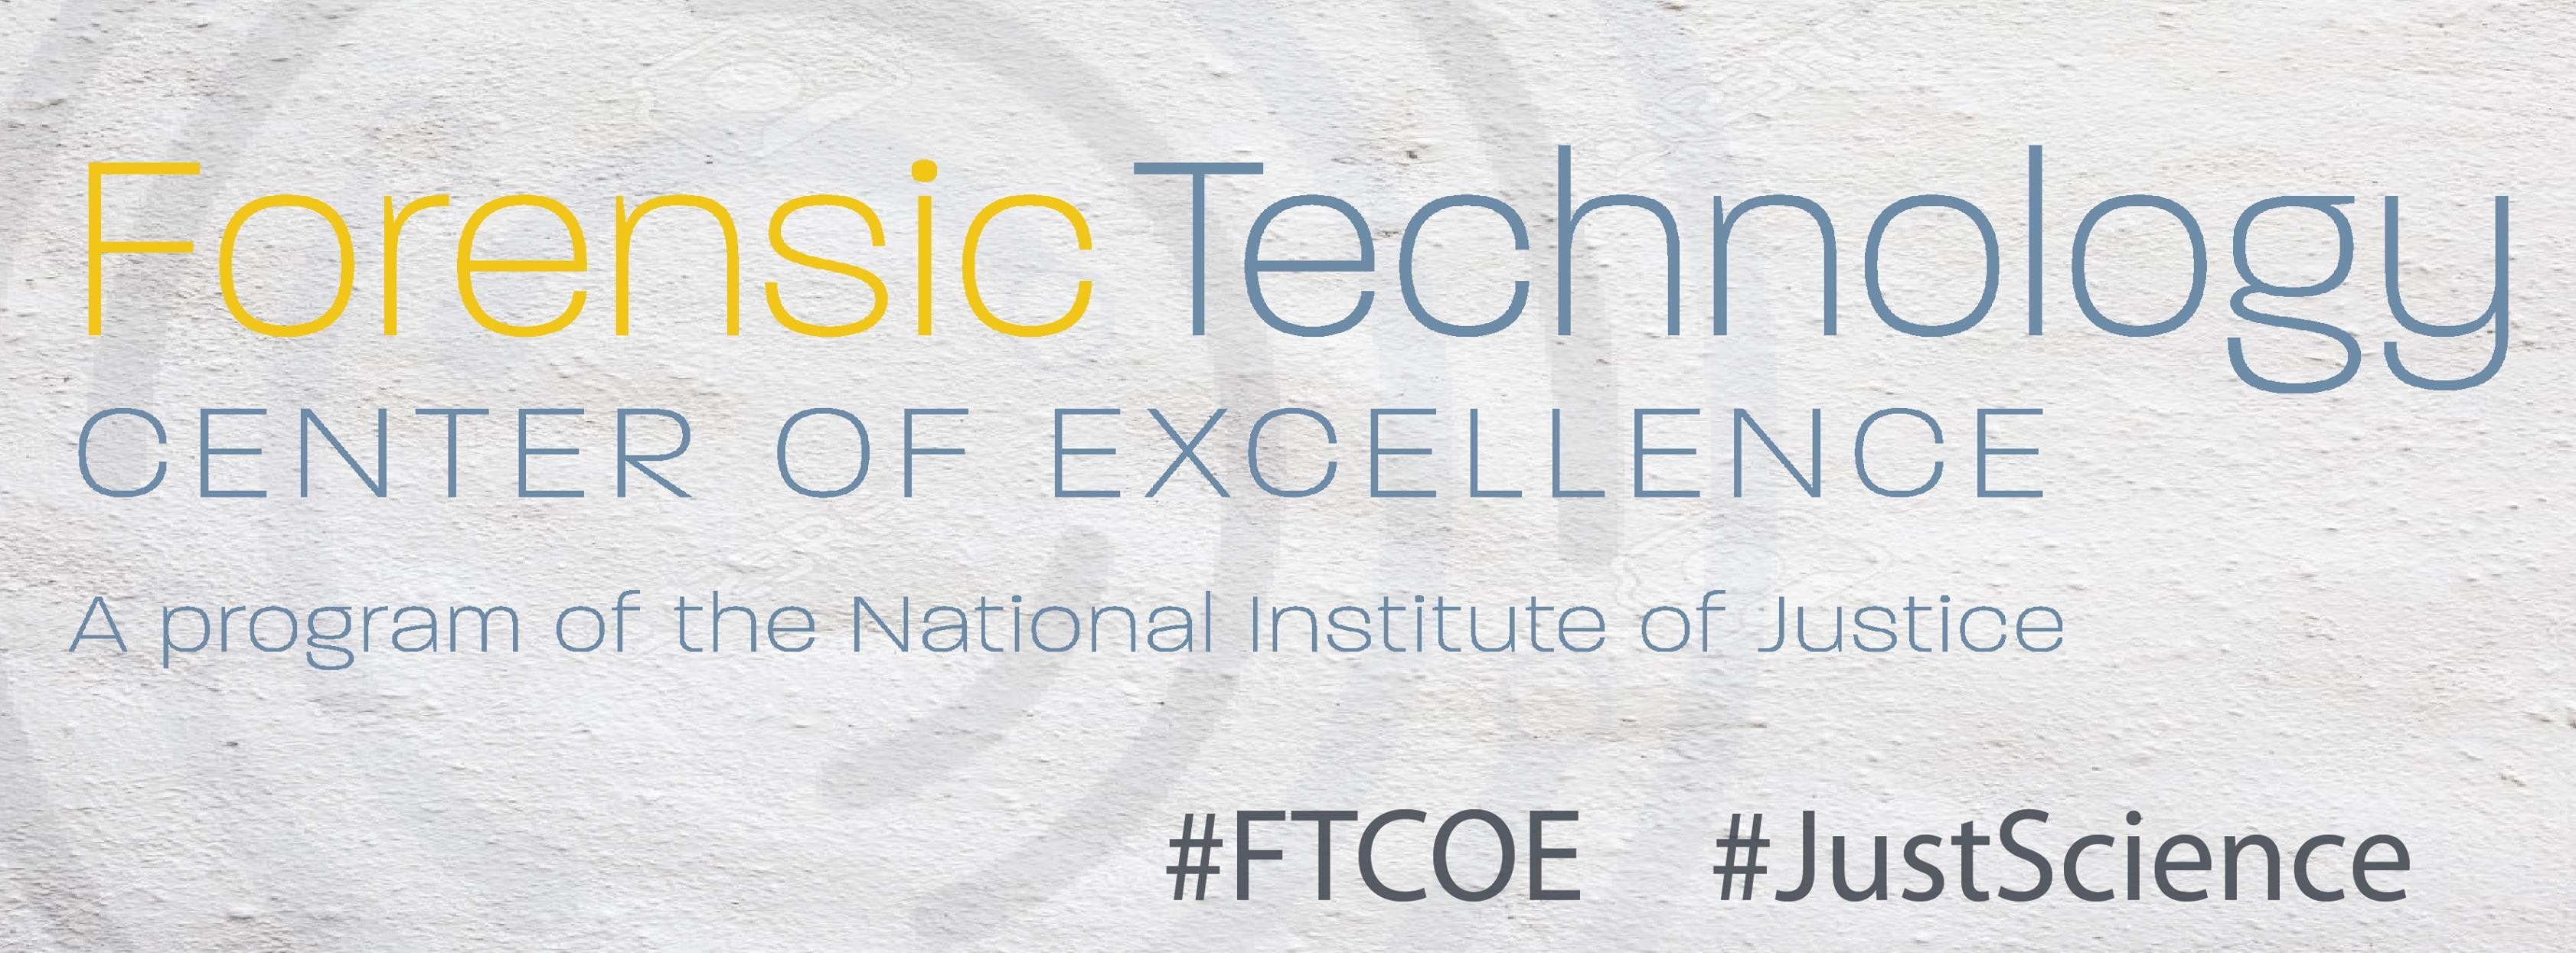 Forensic Technology Center Of Excellence Linkedin